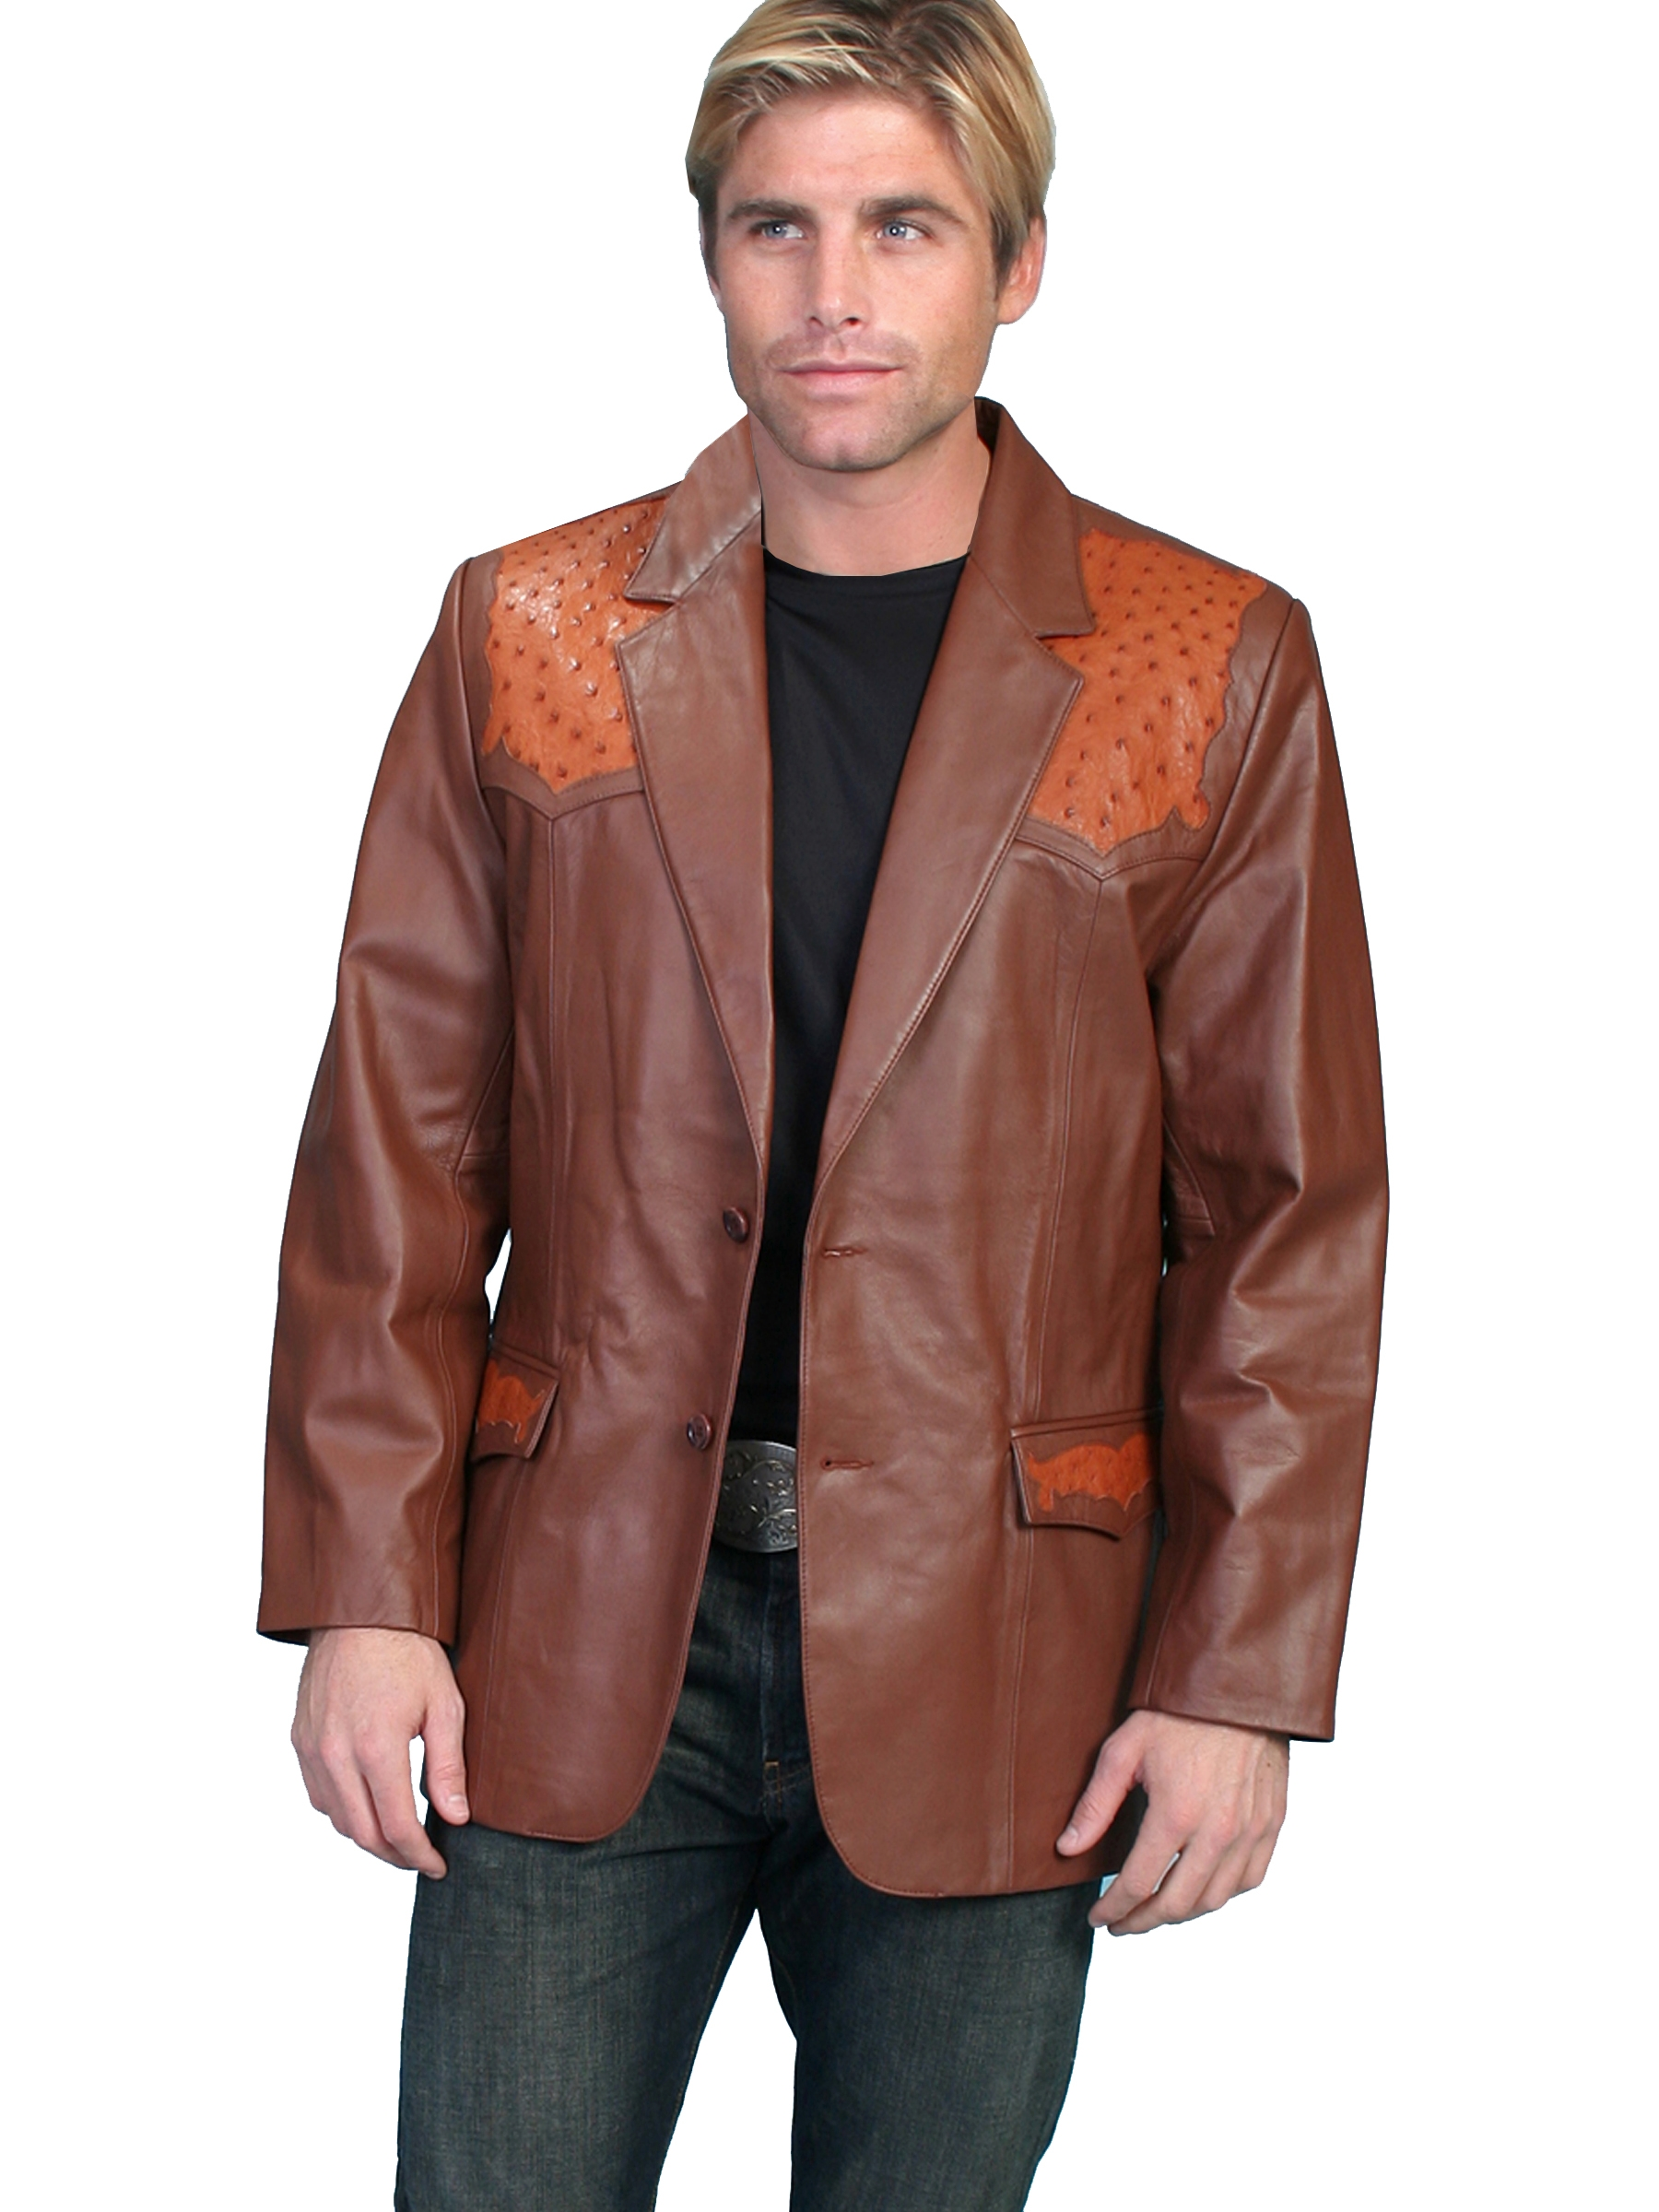 western jackets for men, western blazer, western coats, scully blazers, scully coats, scully jackets, leather western jackets, western fringe jackets, fringe western jackets, daniel boone jacket, davey crocket jacket